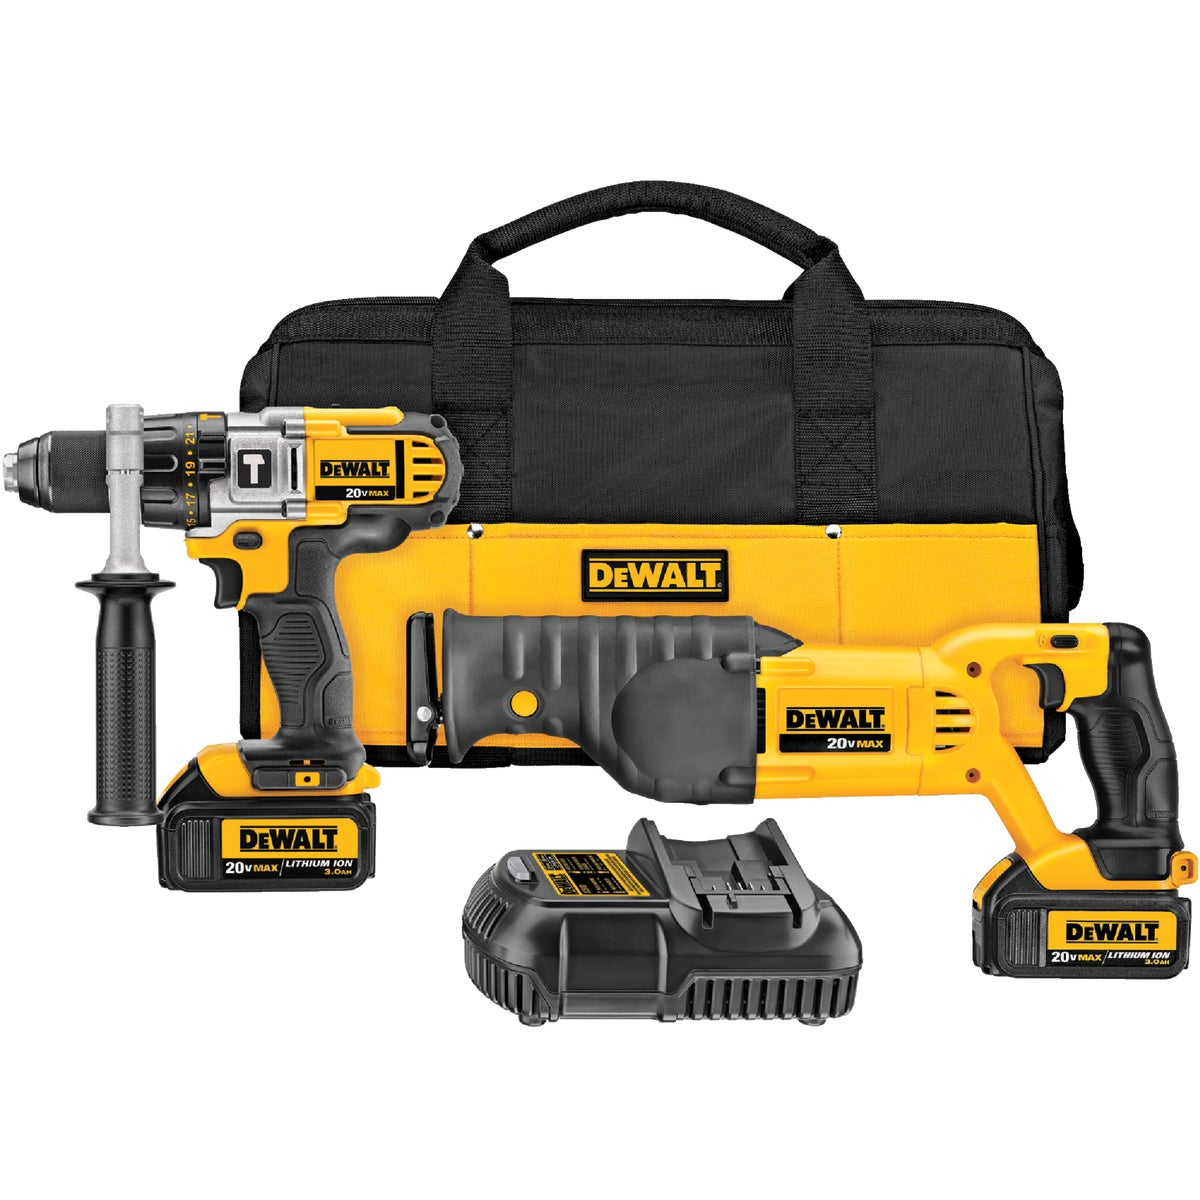 20V HAMRDRIL/RECIP KIT - DCK292L2 by DeWalt